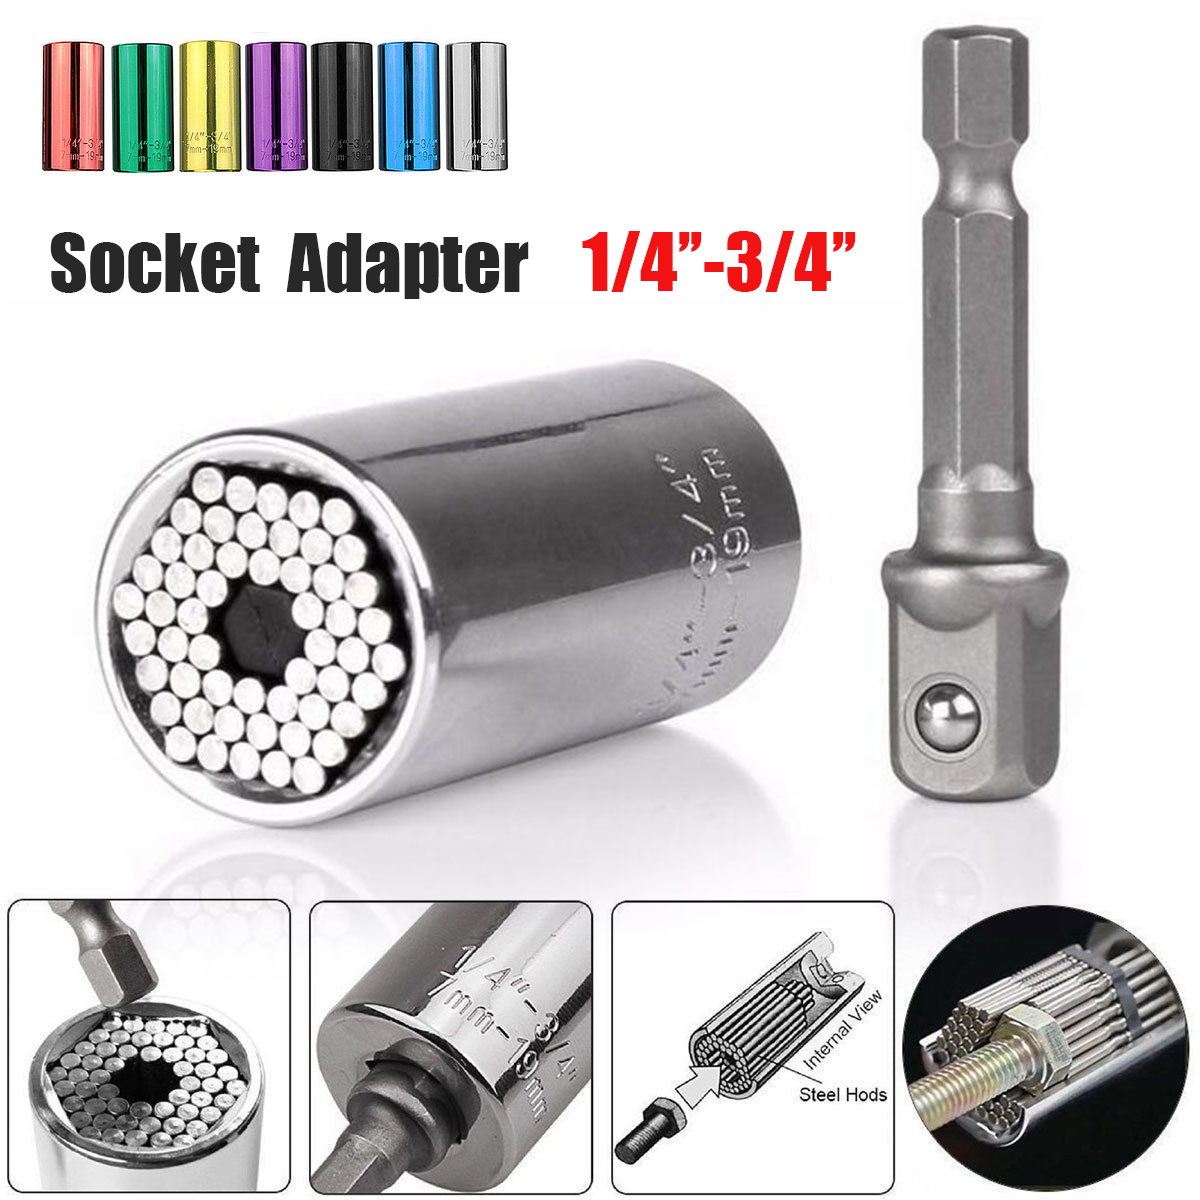 1Pcs Ratchet Universal mechanictool Sockets Metric Wrench with Power Drill Adapter Universal Repair Tools 7mm to 19mm